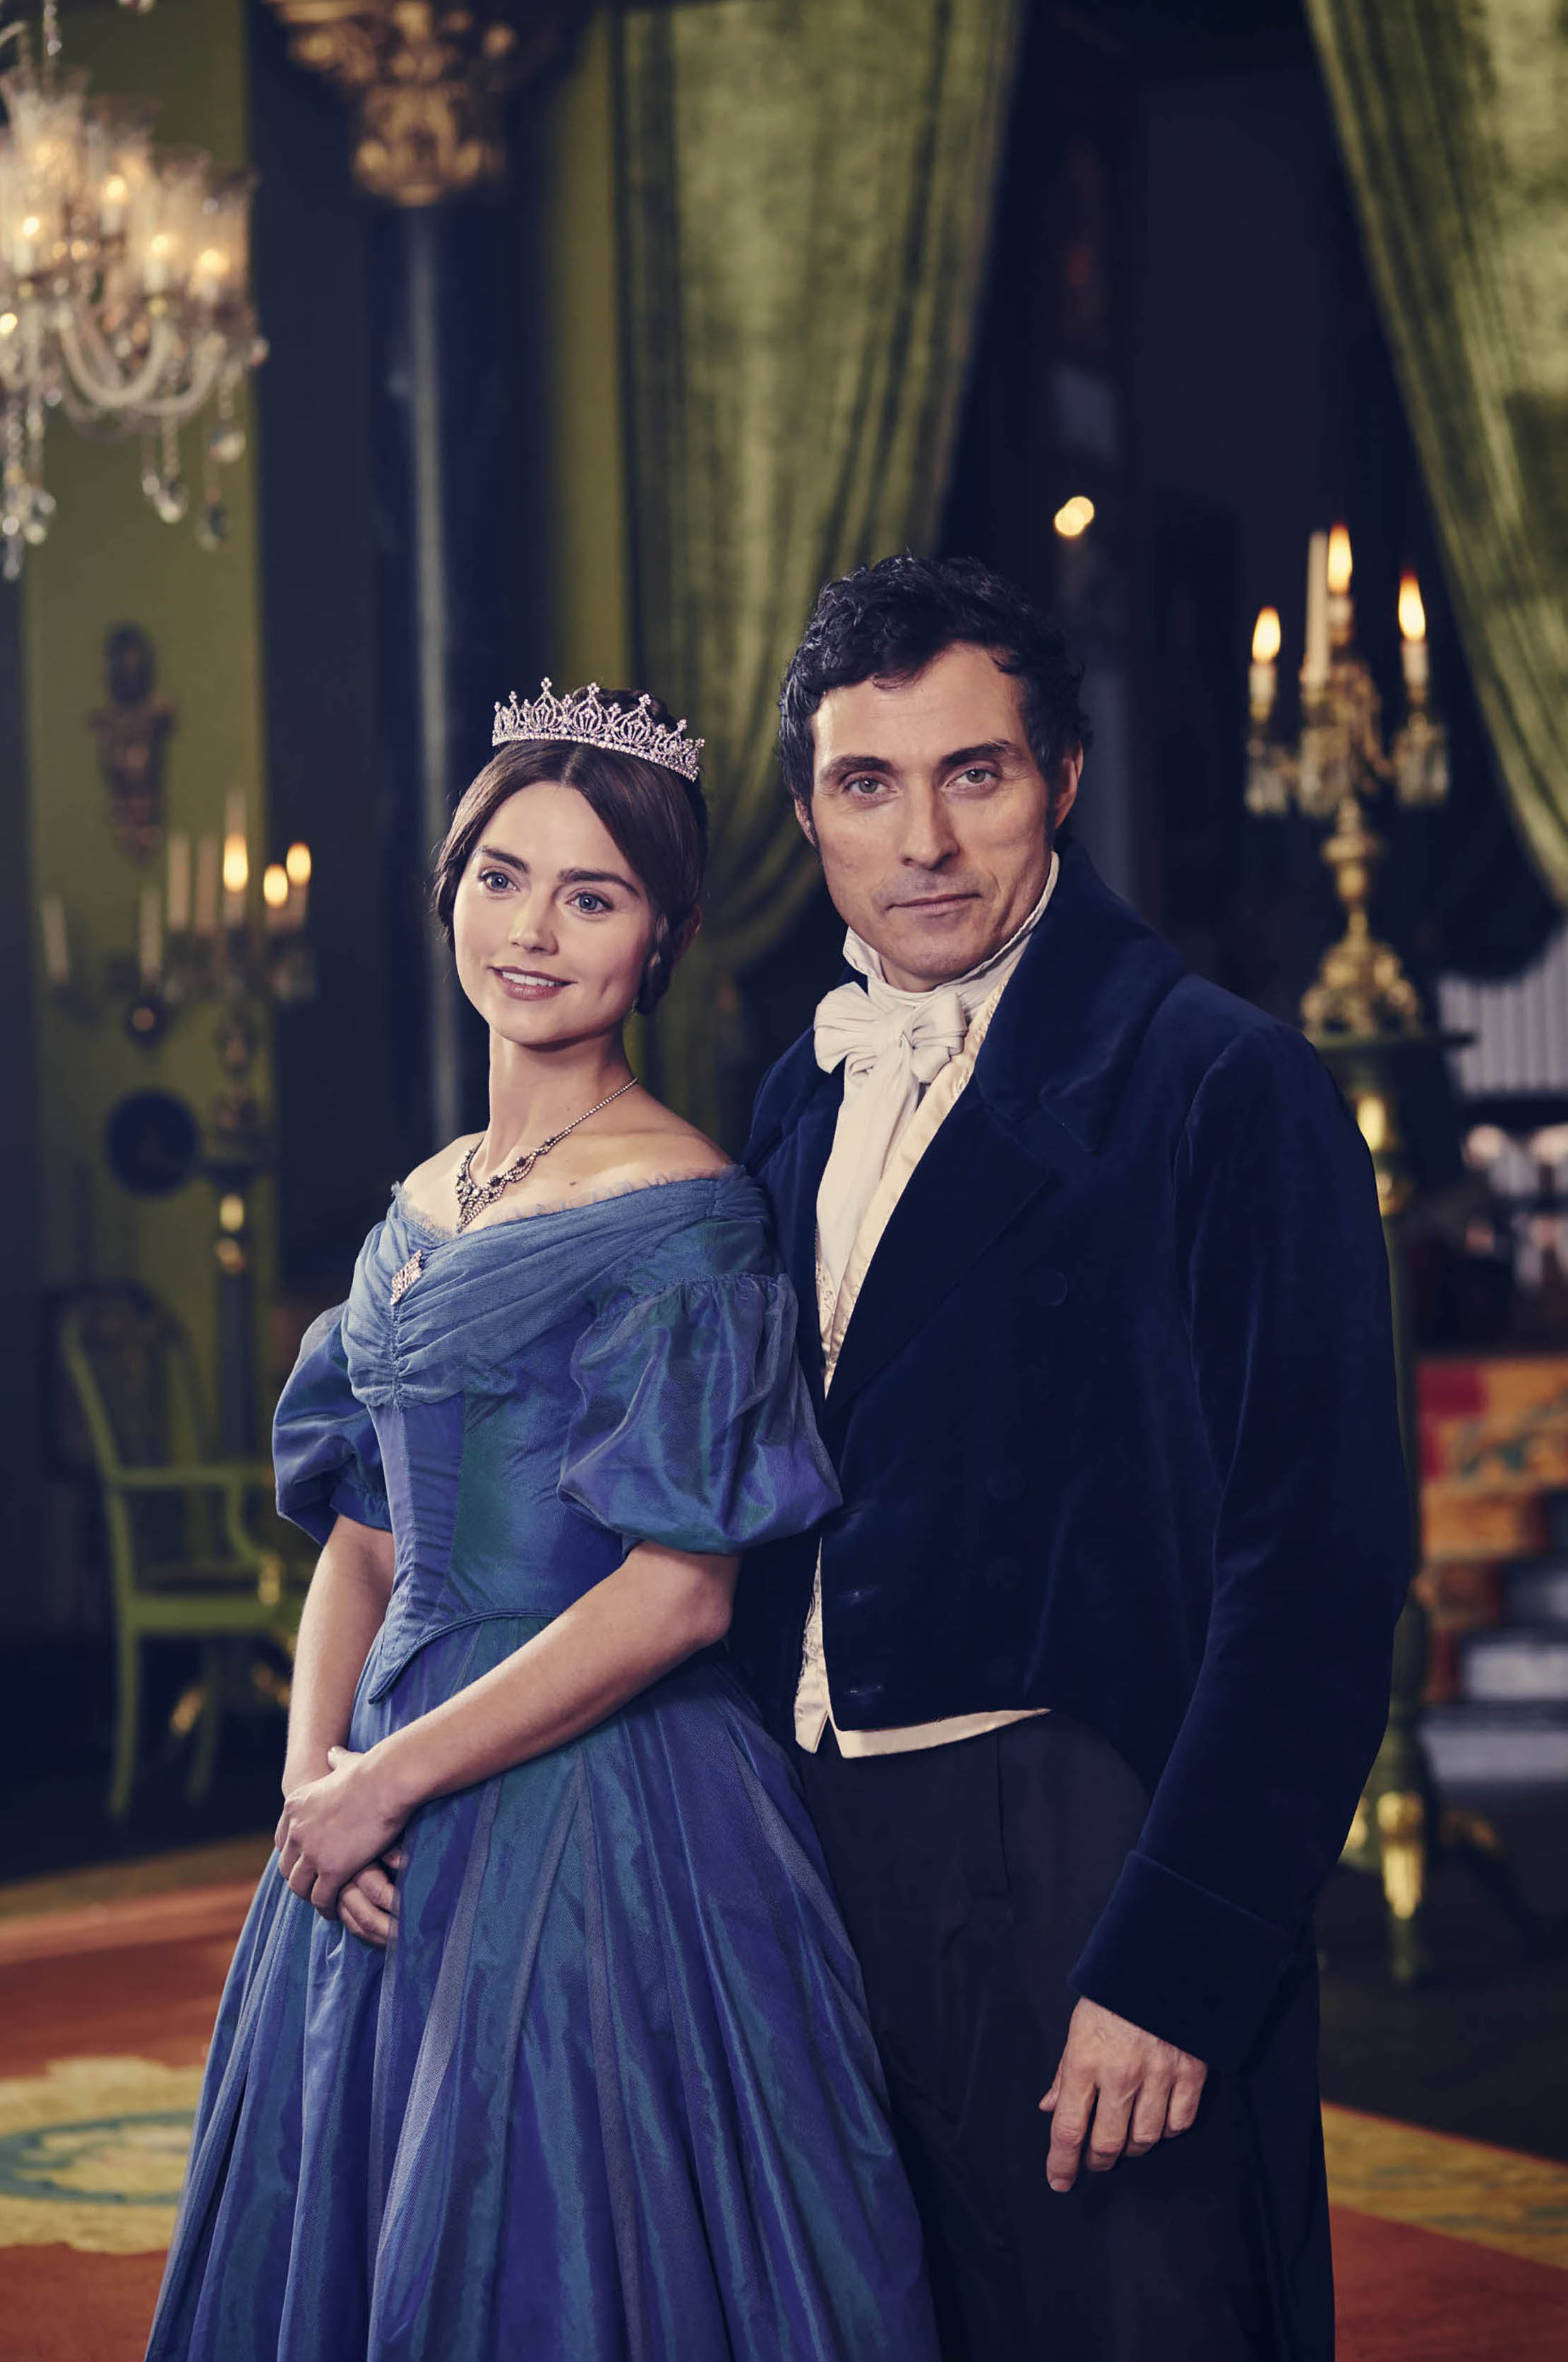 GALLERY: 'Victoria' - Promotional & Global Premiere Pictures